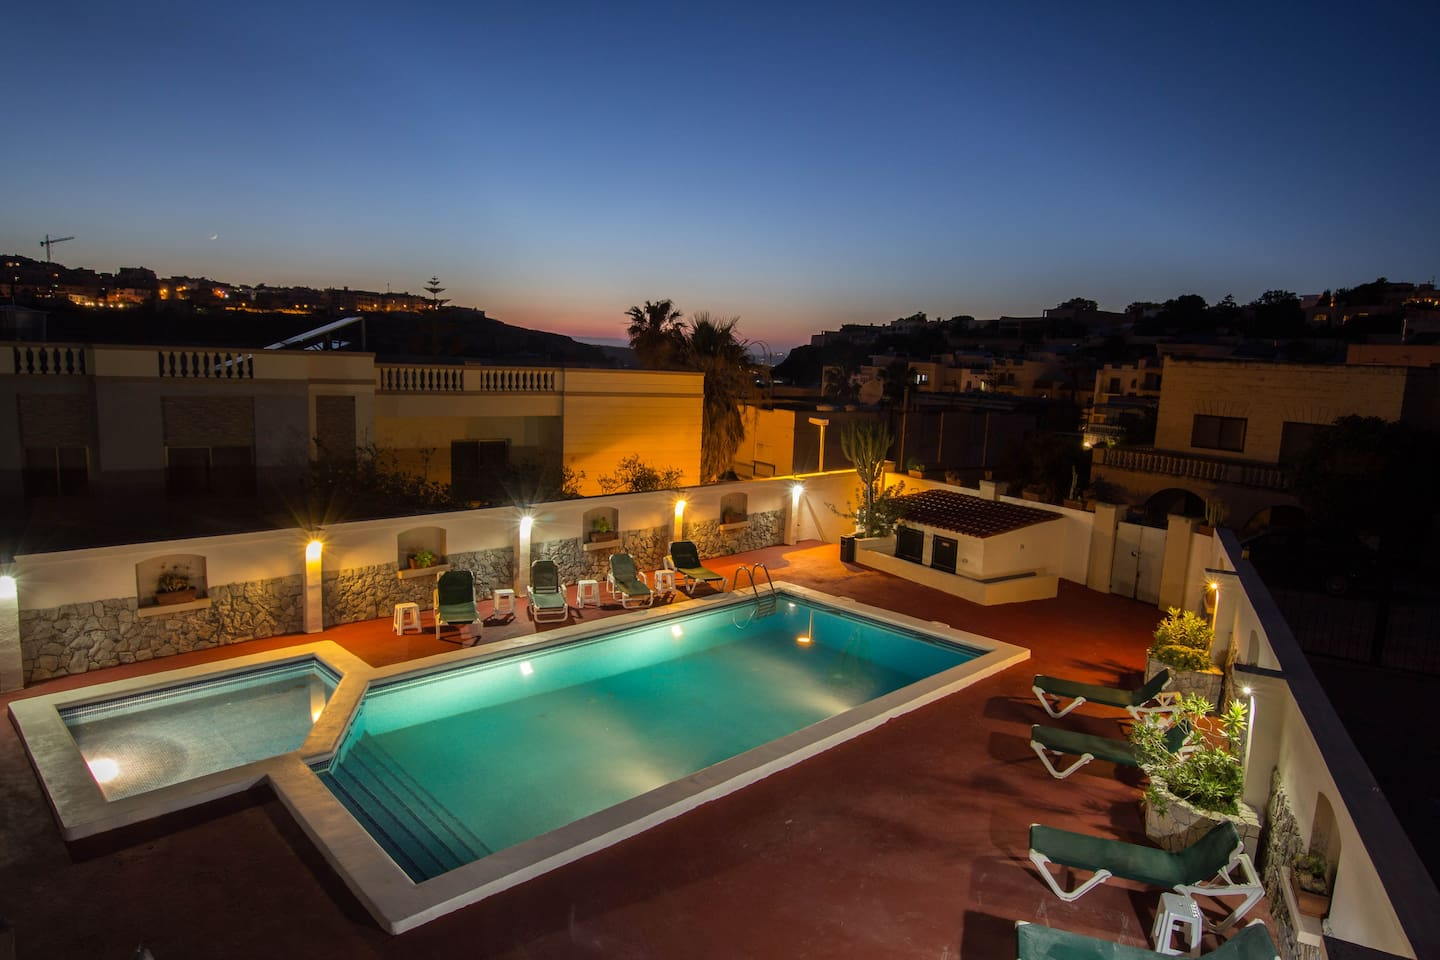 pool area by sunset